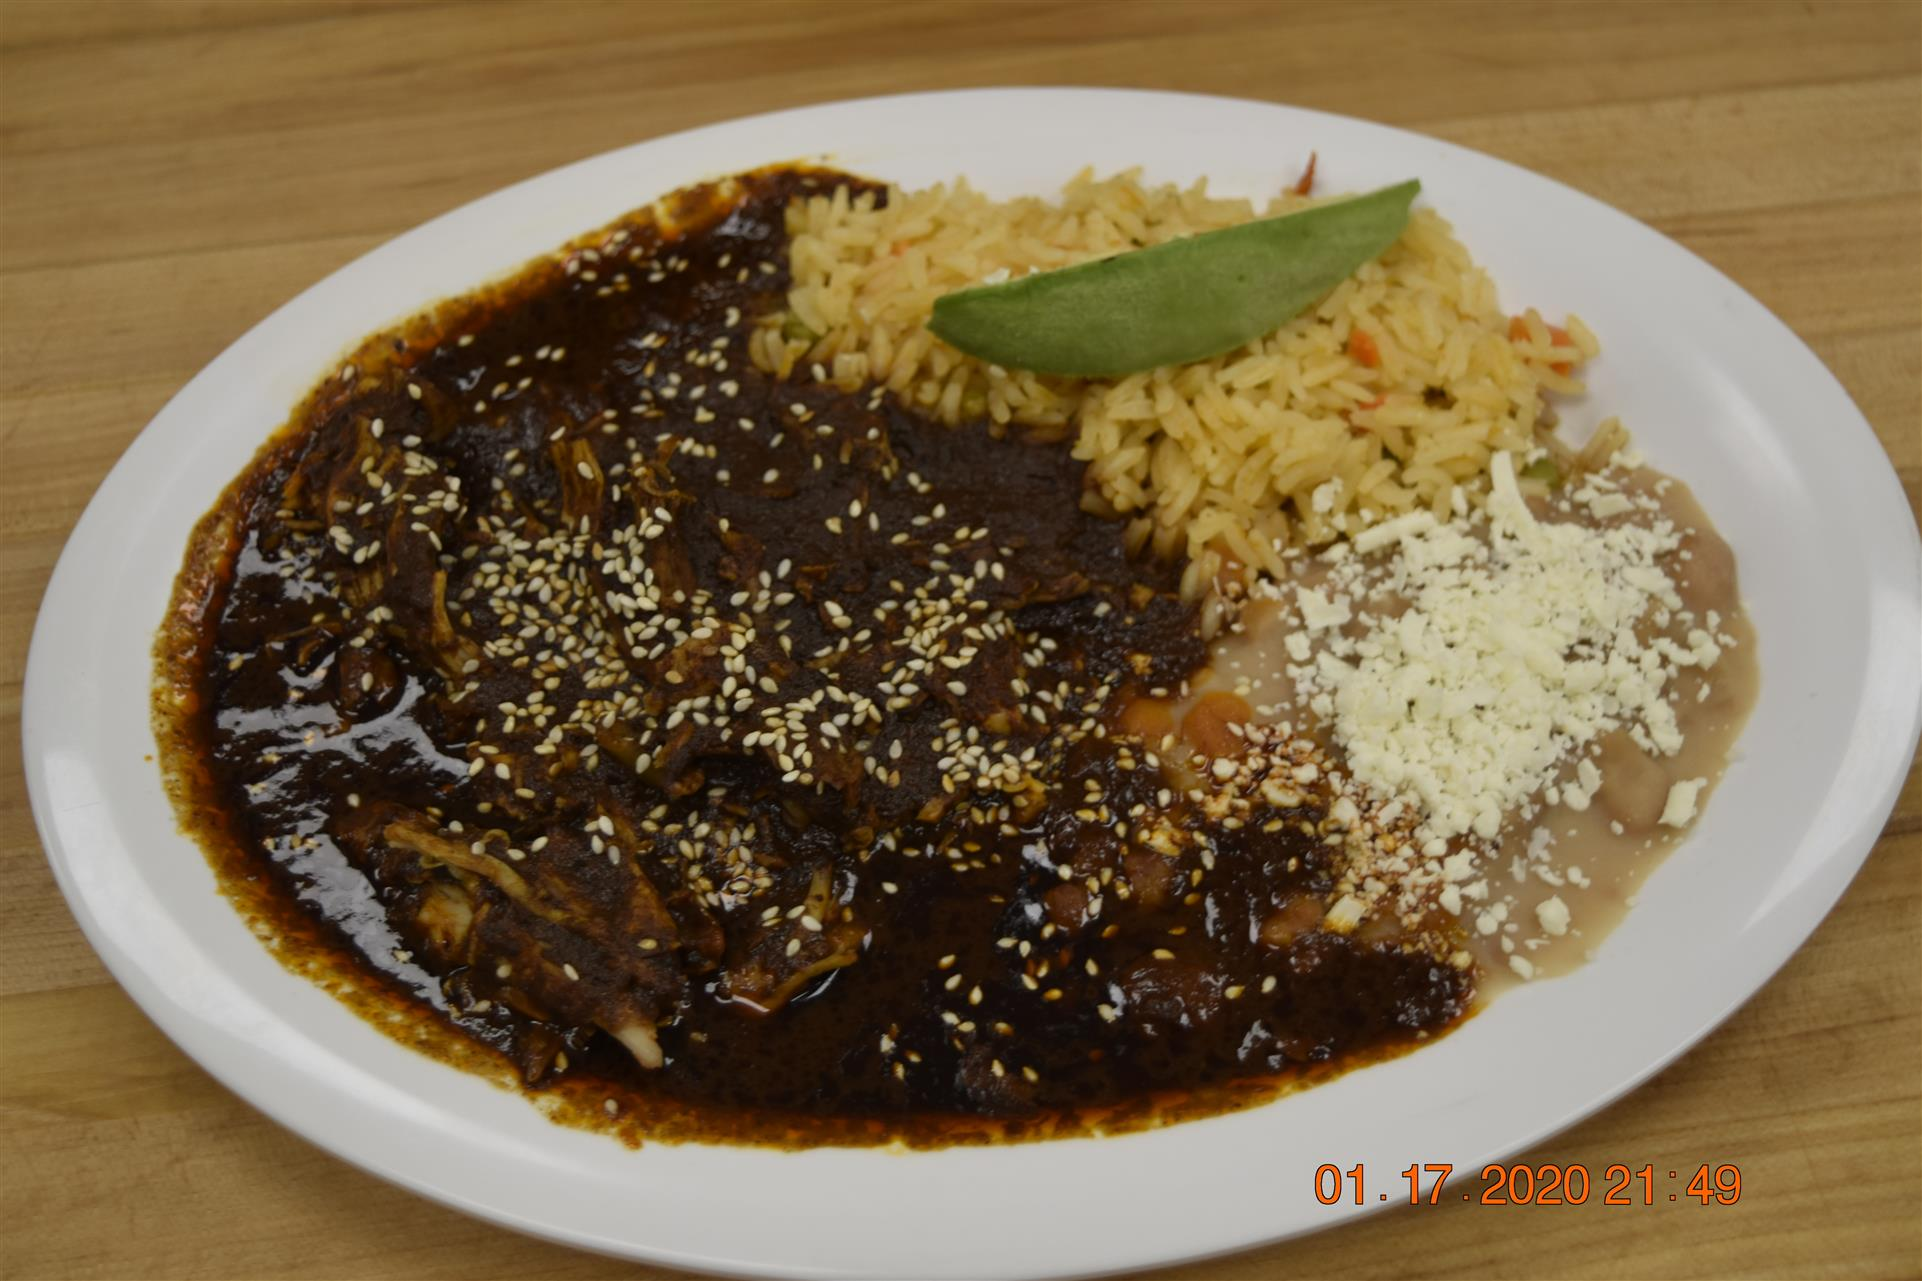 meat dish in a brown sesame sauce with side of rice and beans